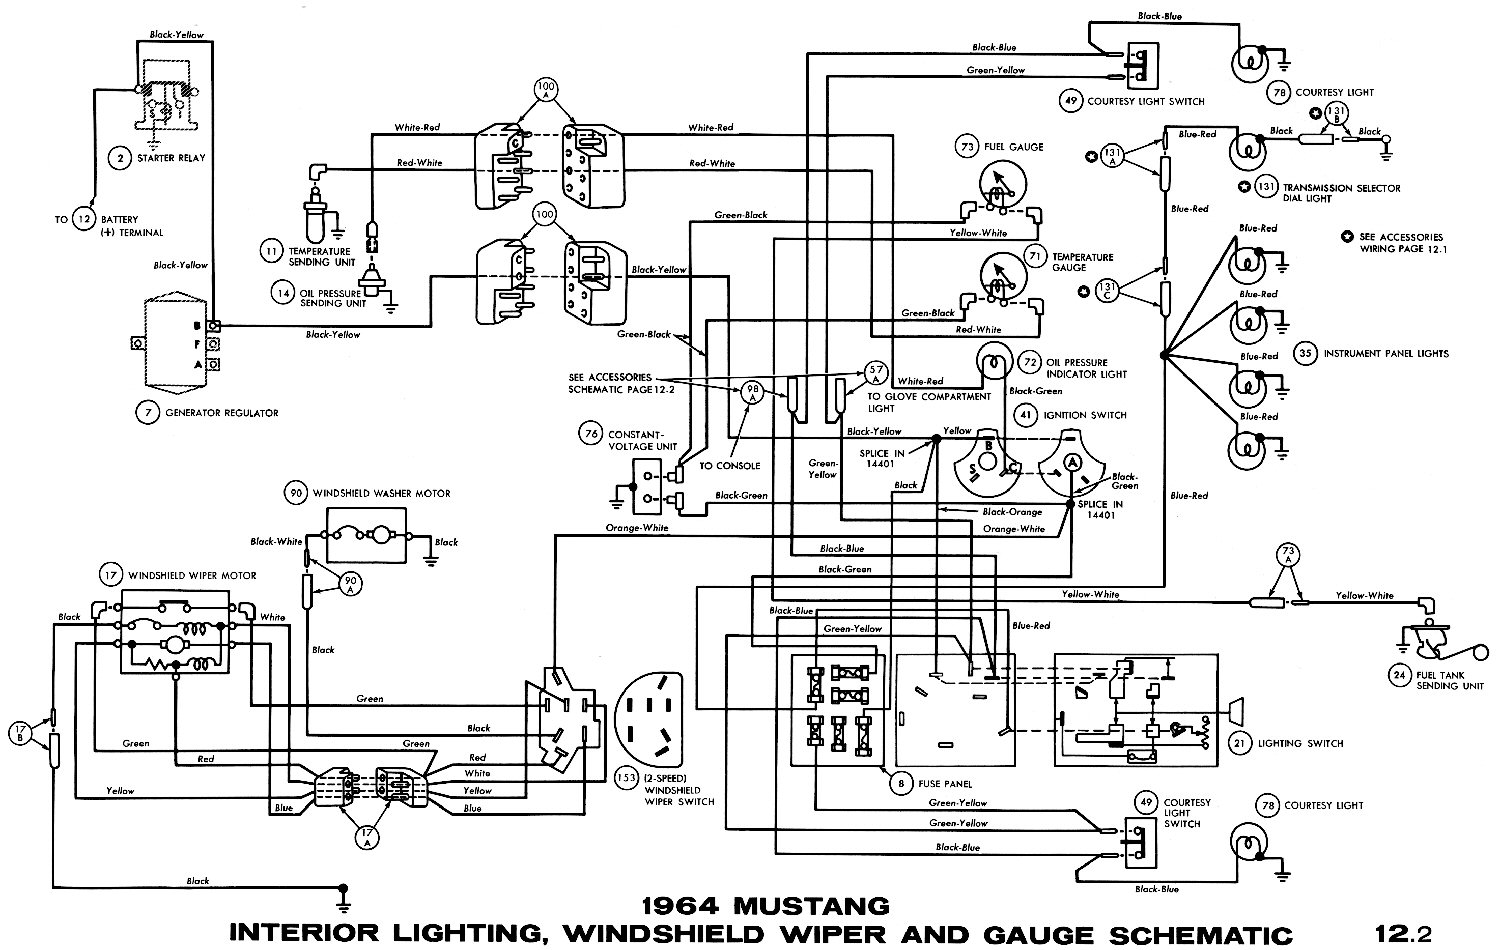 hight resolution of 65 mustang wiper wiring diagram detailed schematics diagram rh jppastryarts com 1965 gto 1966 gto radio